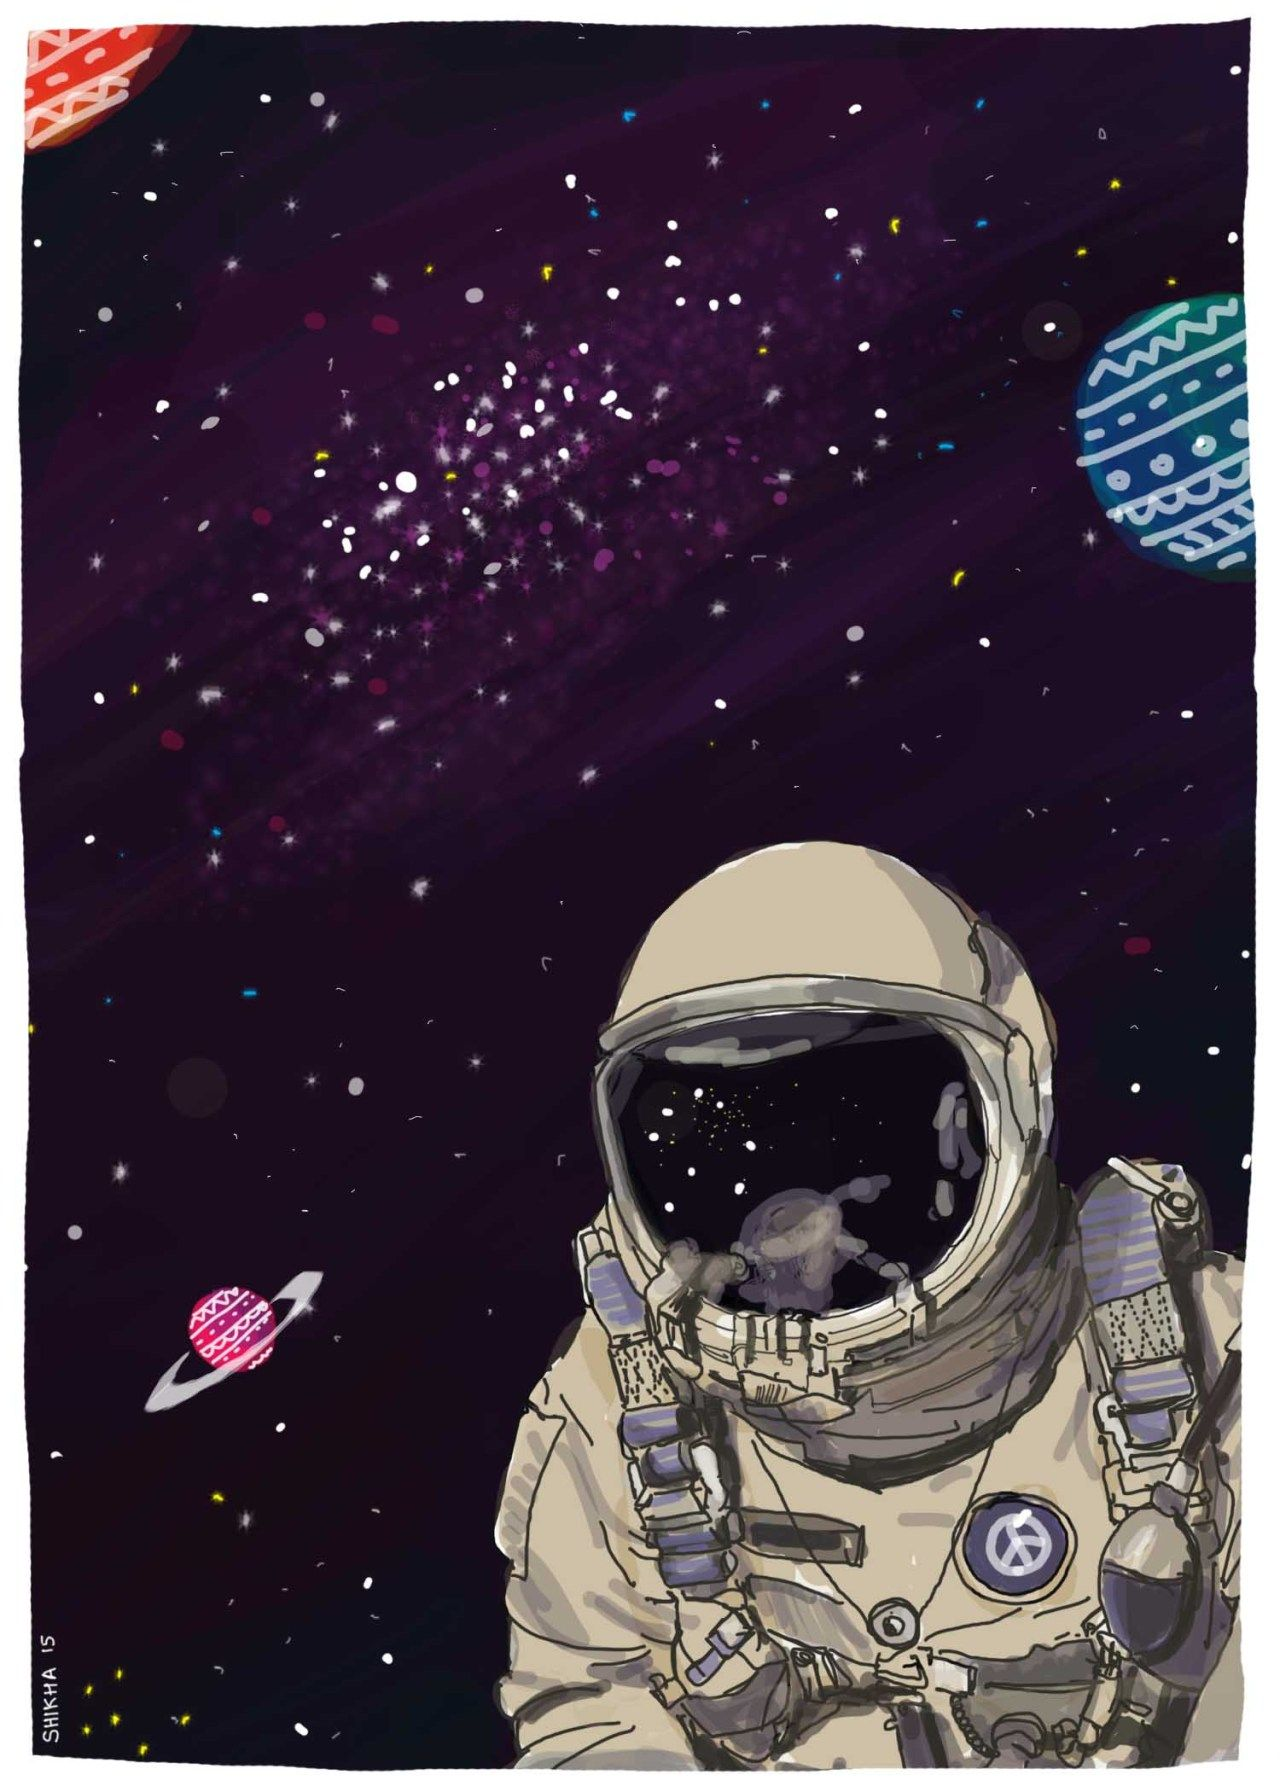 Boomerang Astronaut In Peace Space Illustration 2 Space Illustration Astronaut Art Hipster Wallpaper